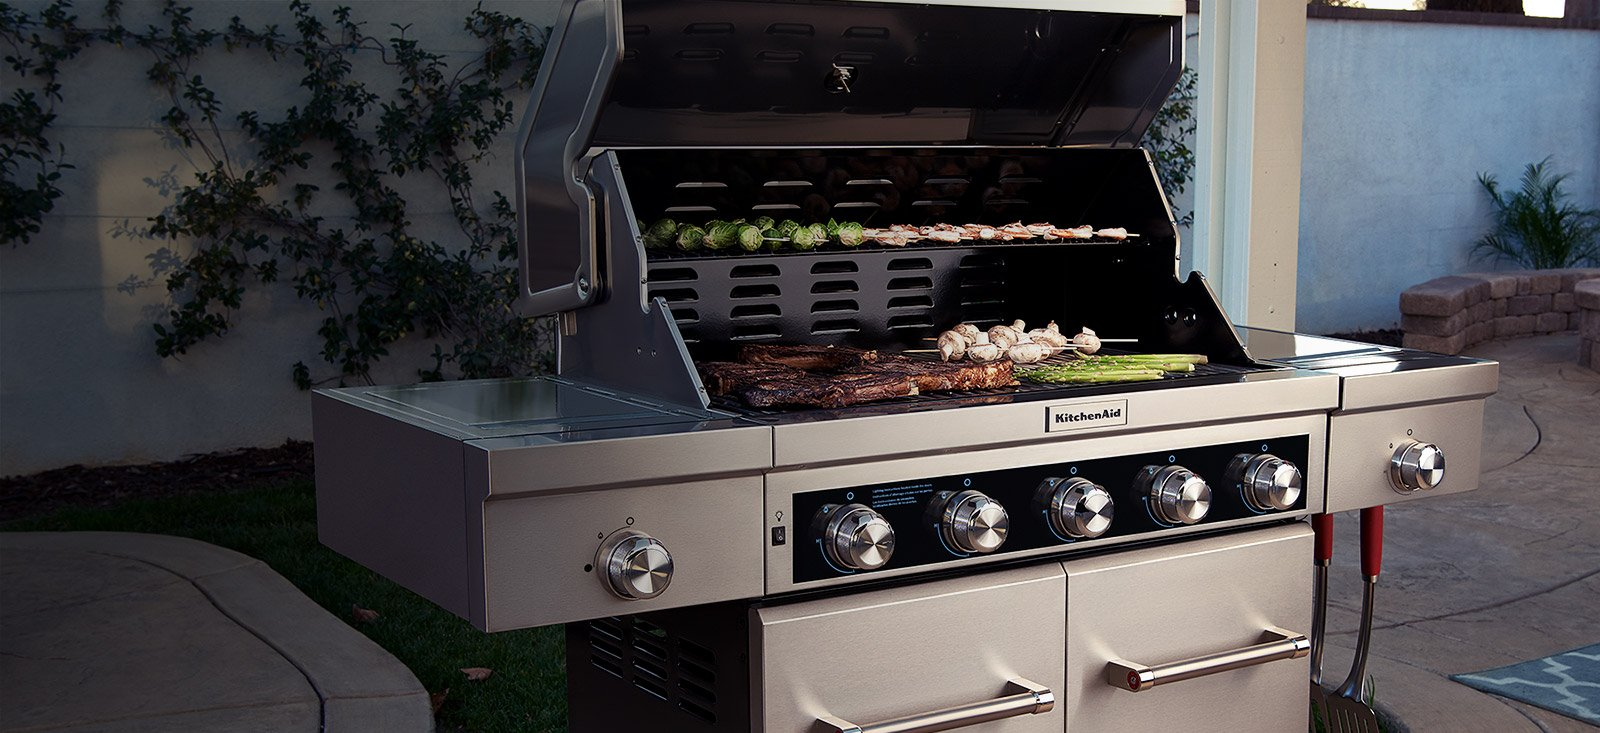 4 Burner Propane Bbq In Stainless Steel With Ceramic